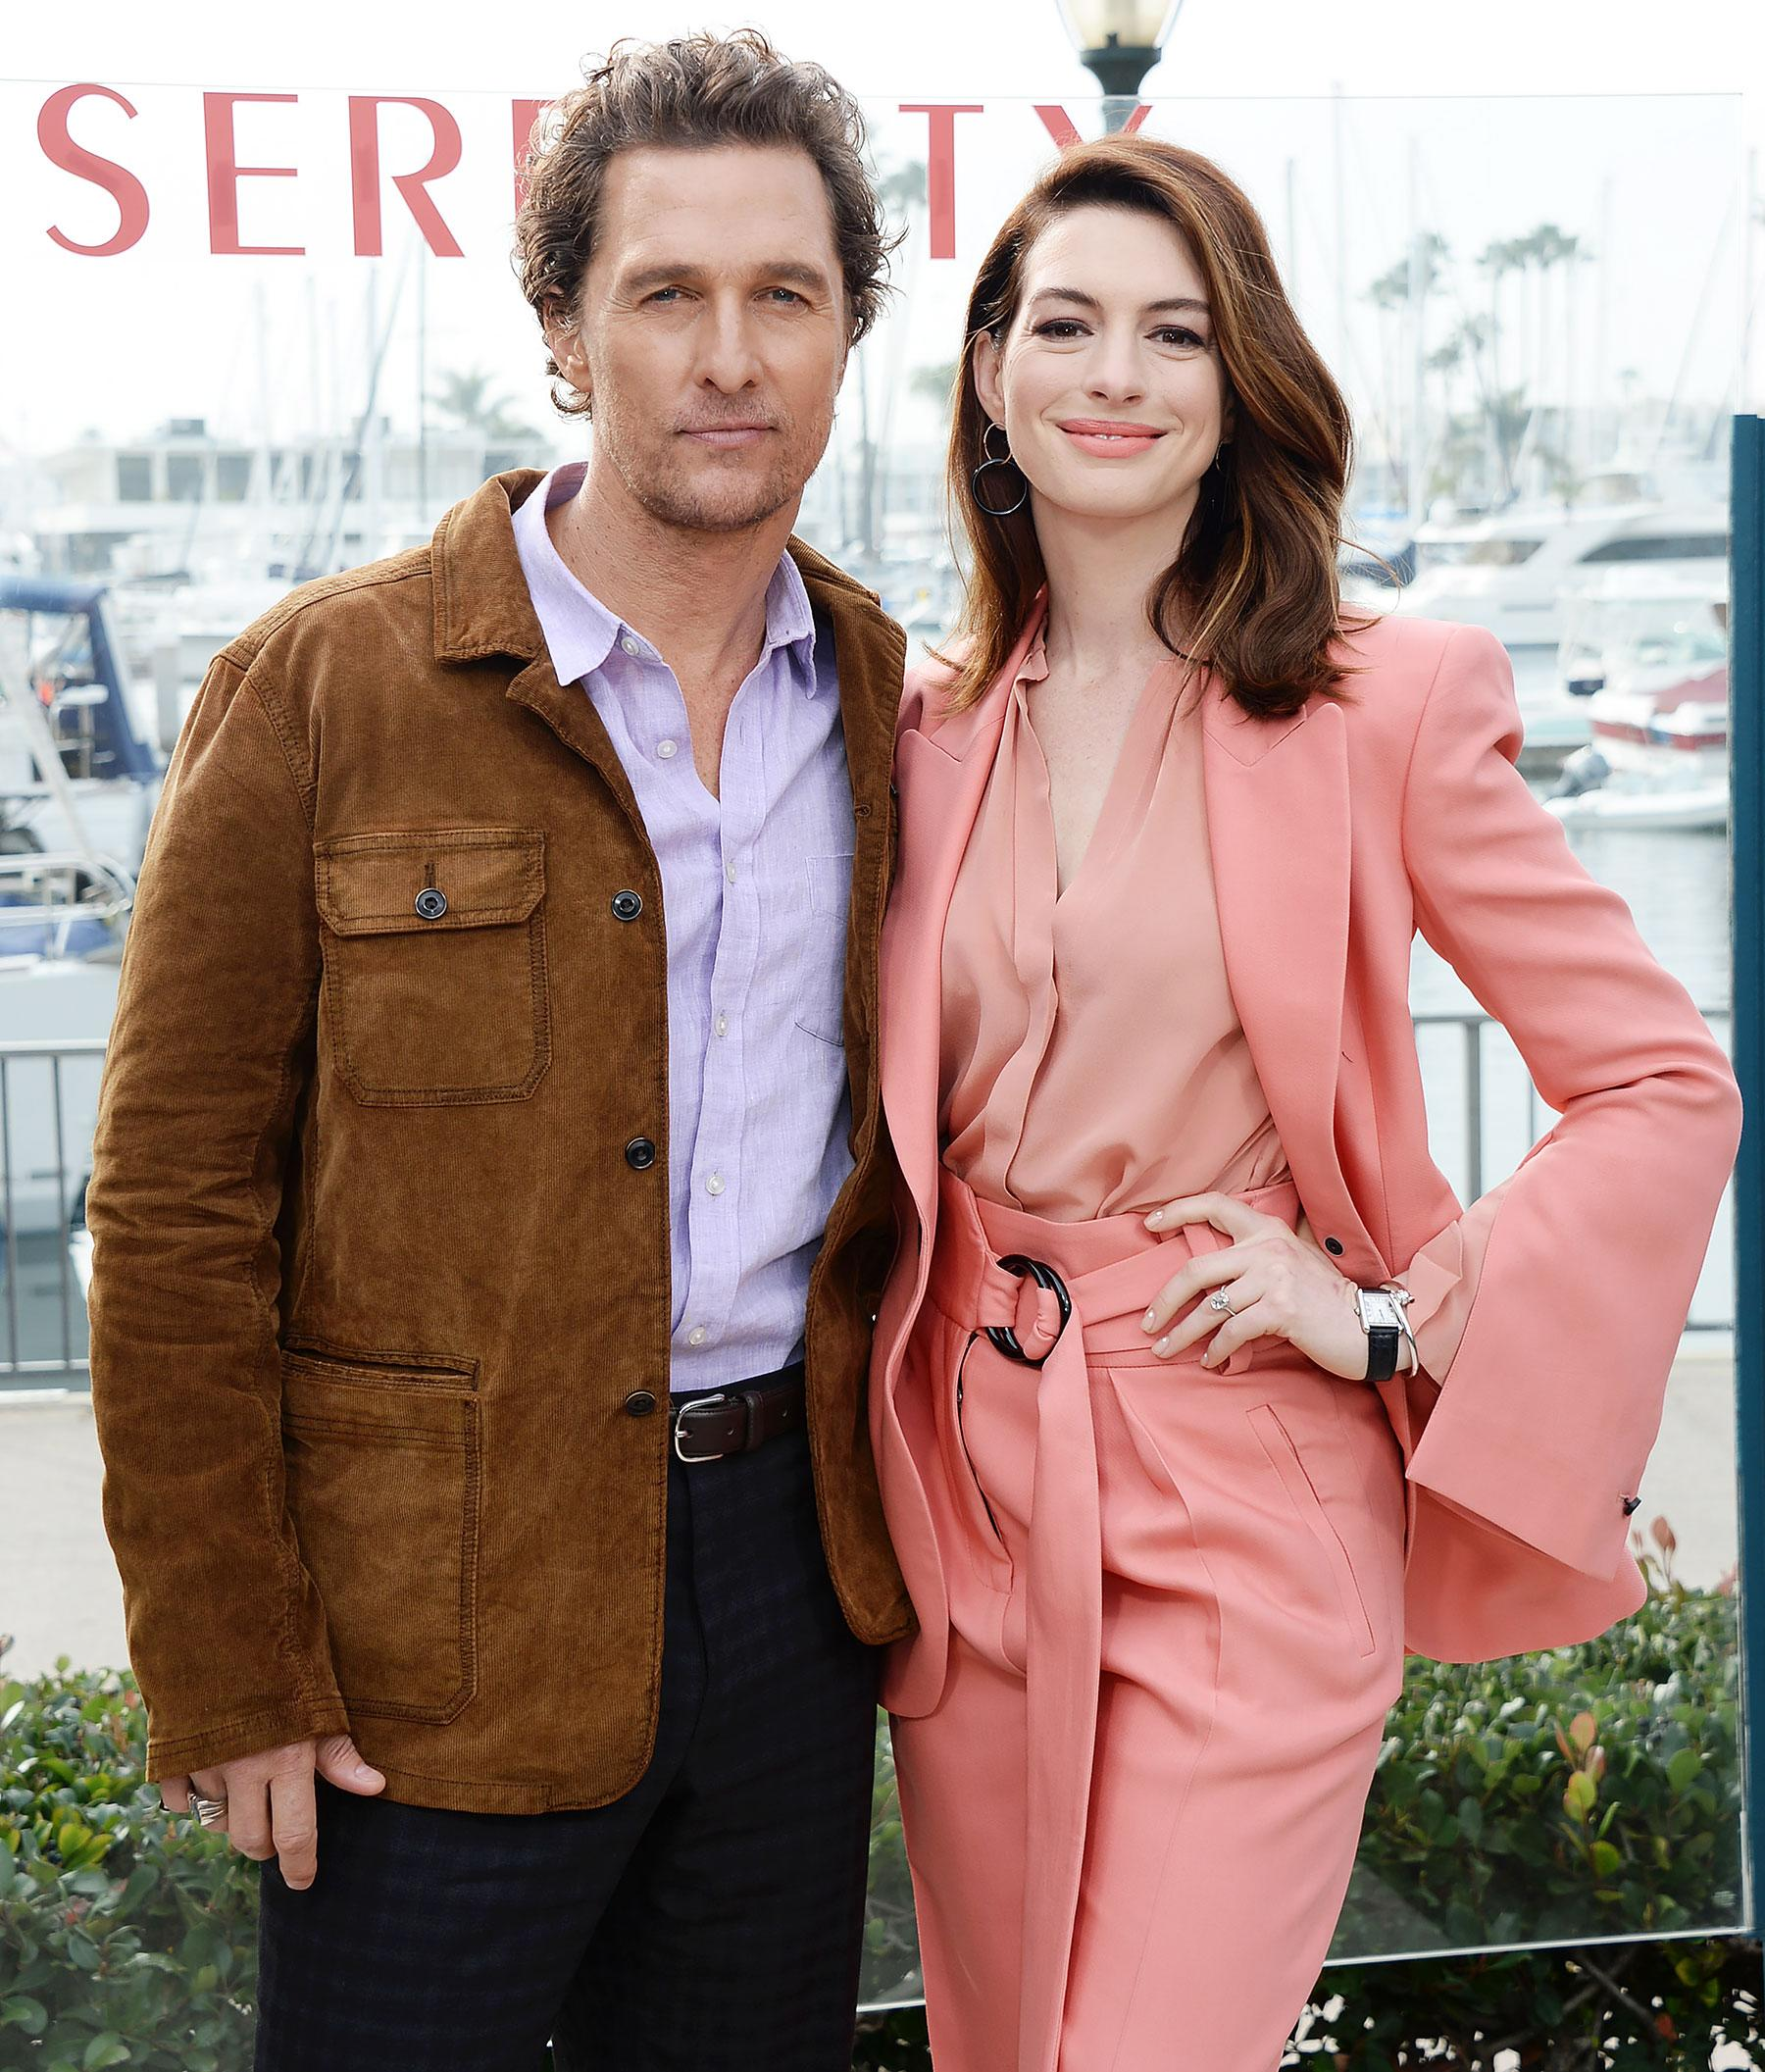 Anne Hathaway And Matthew Mcconaughey Movies: Matthew McConaughey Hurts His Back In Unusual Bed Injury